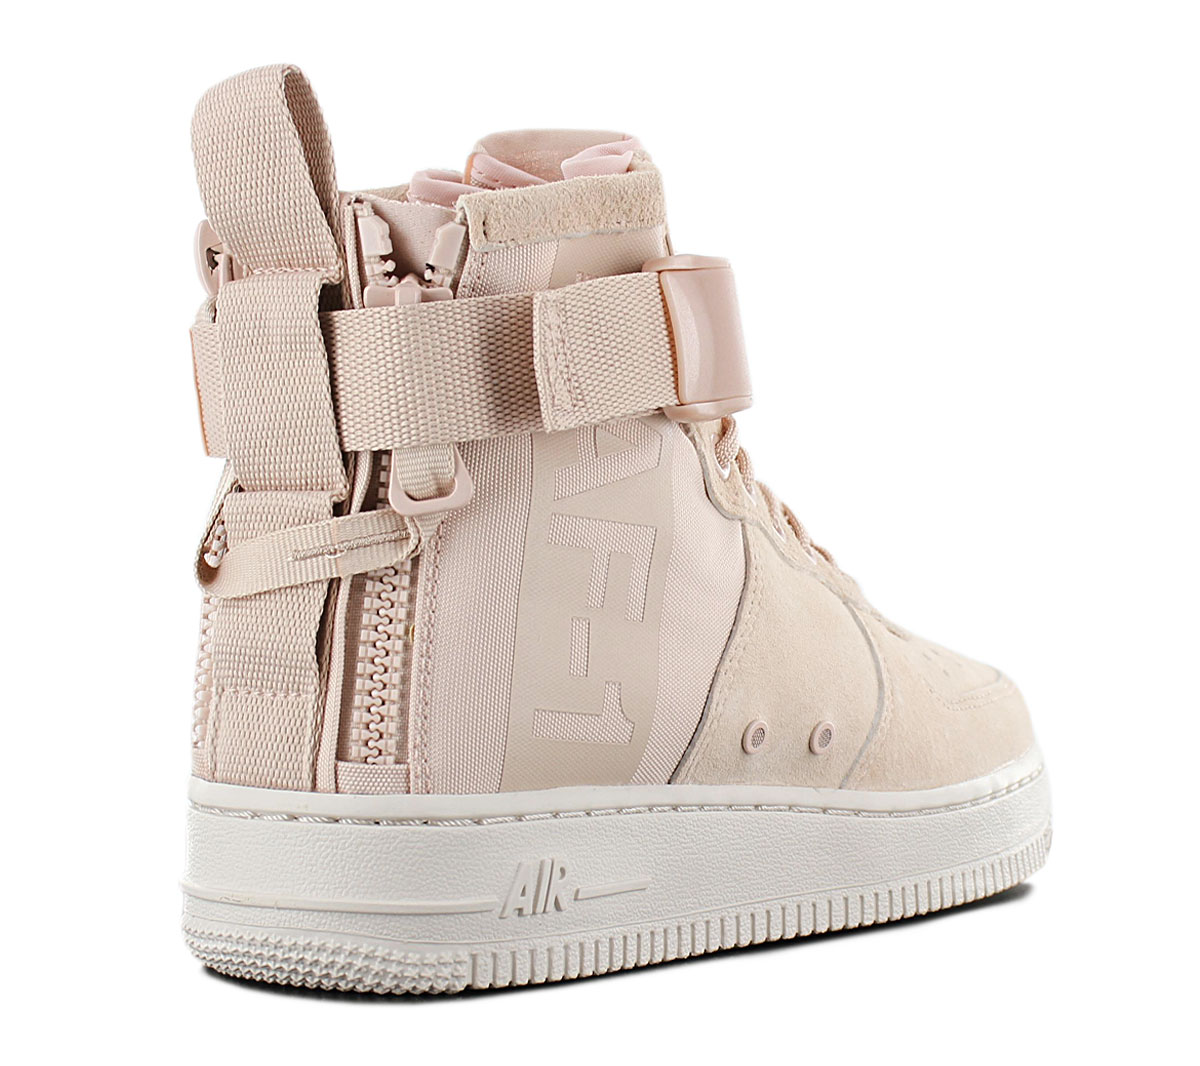 Details about Nike Air Force 1 mid Sf AF1 Women's Sneaker AA3966 201 Beige Shoes Sneakers New